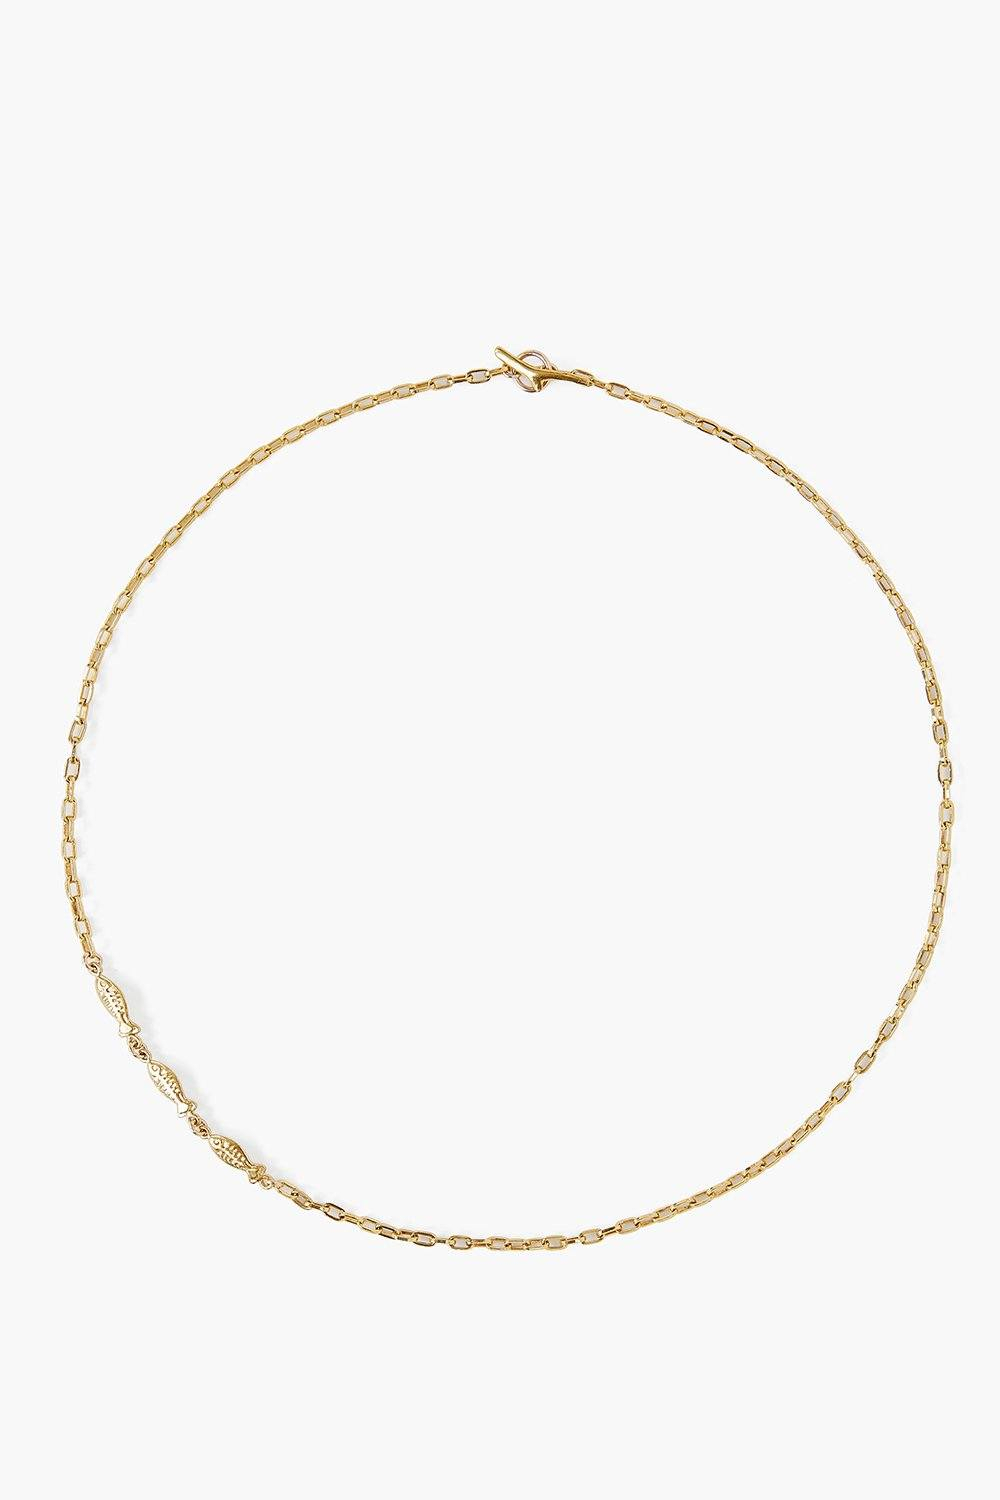 Yellow Gold Minnow Chain Necklace